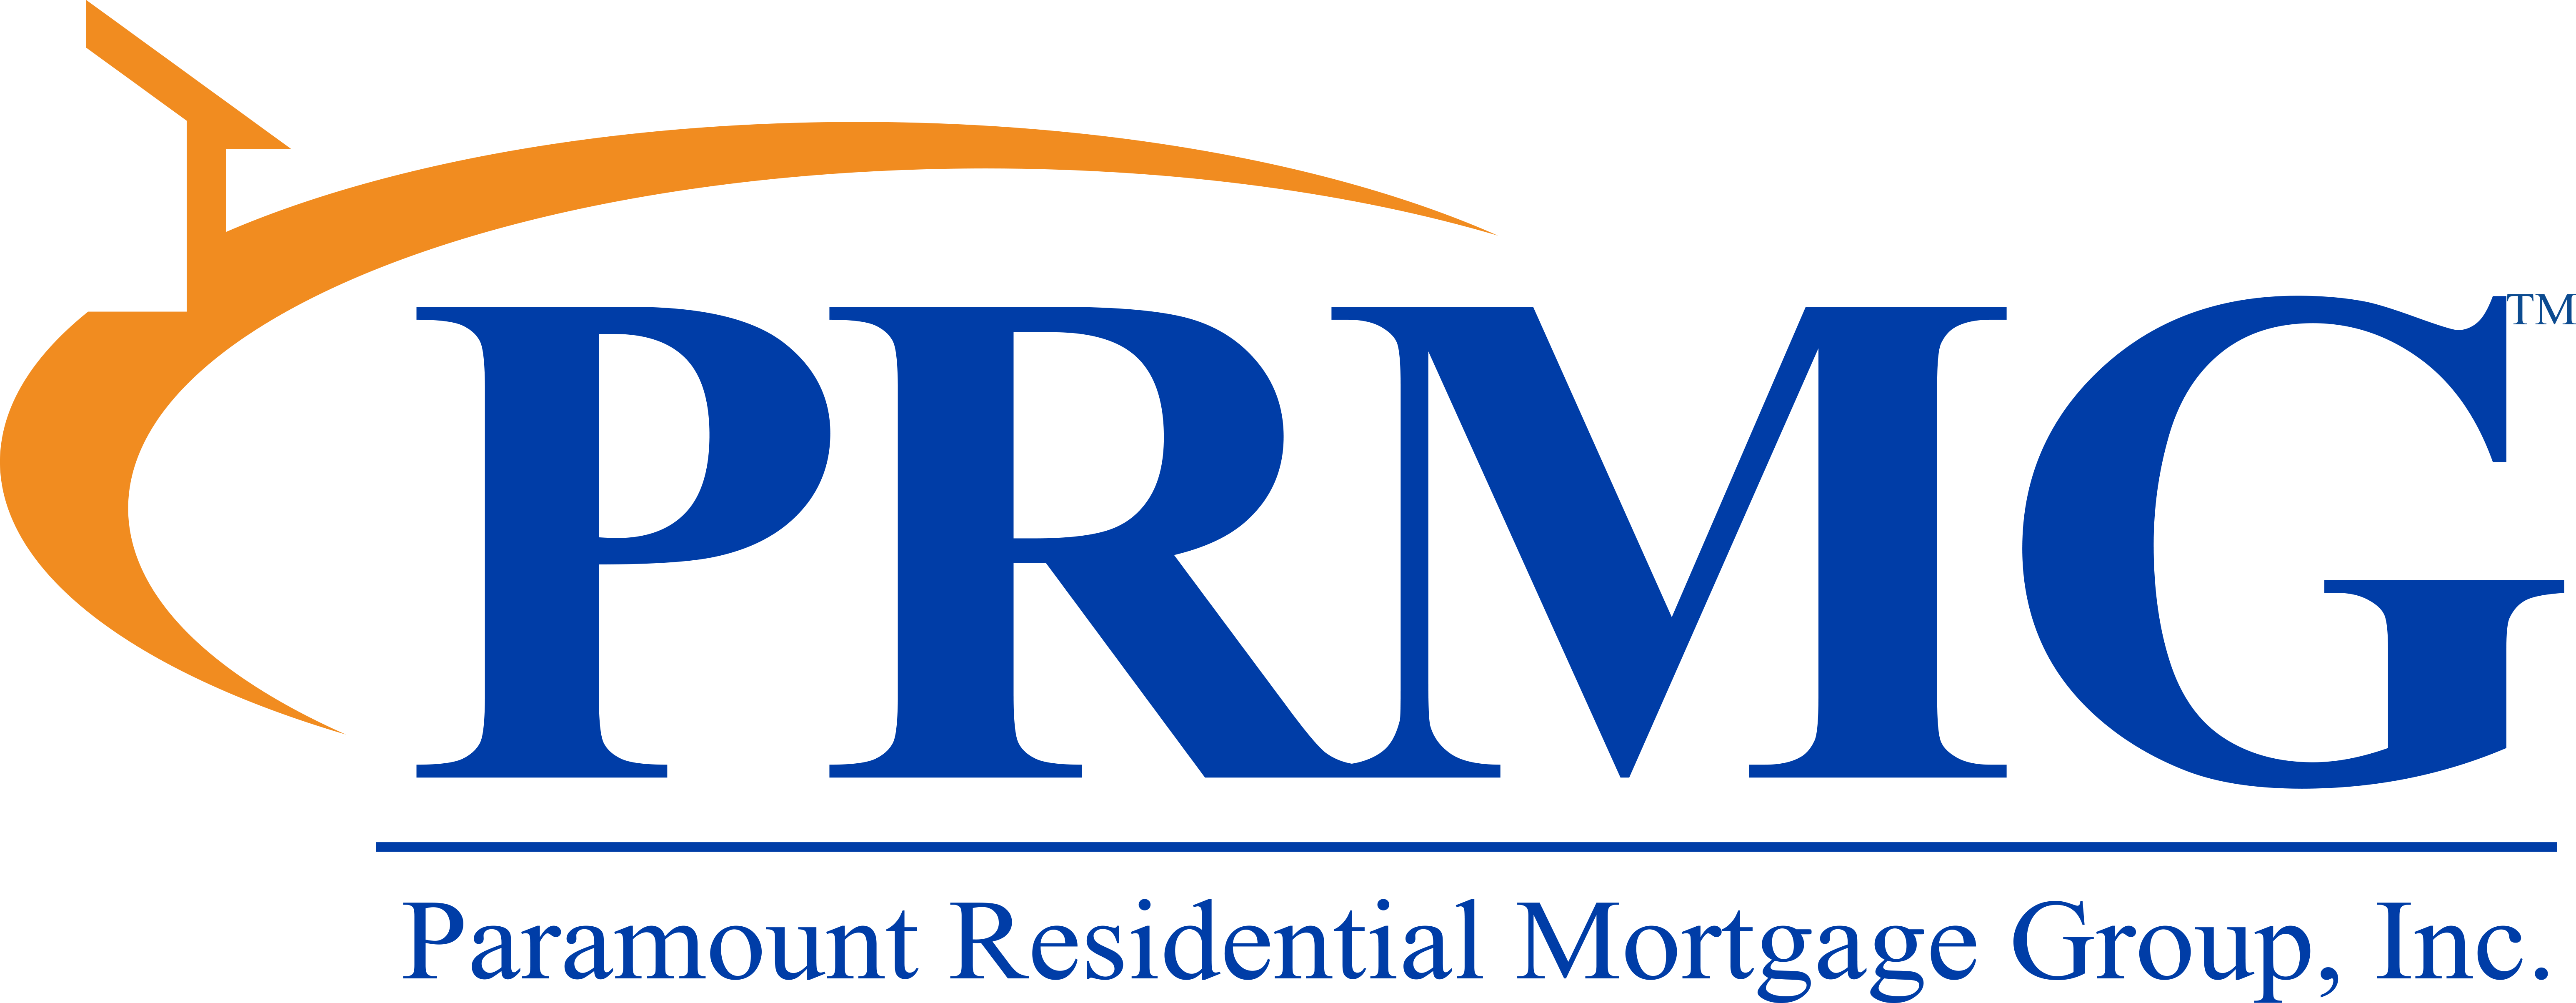 Paramount Residential Mortgage Group, Inc. logo